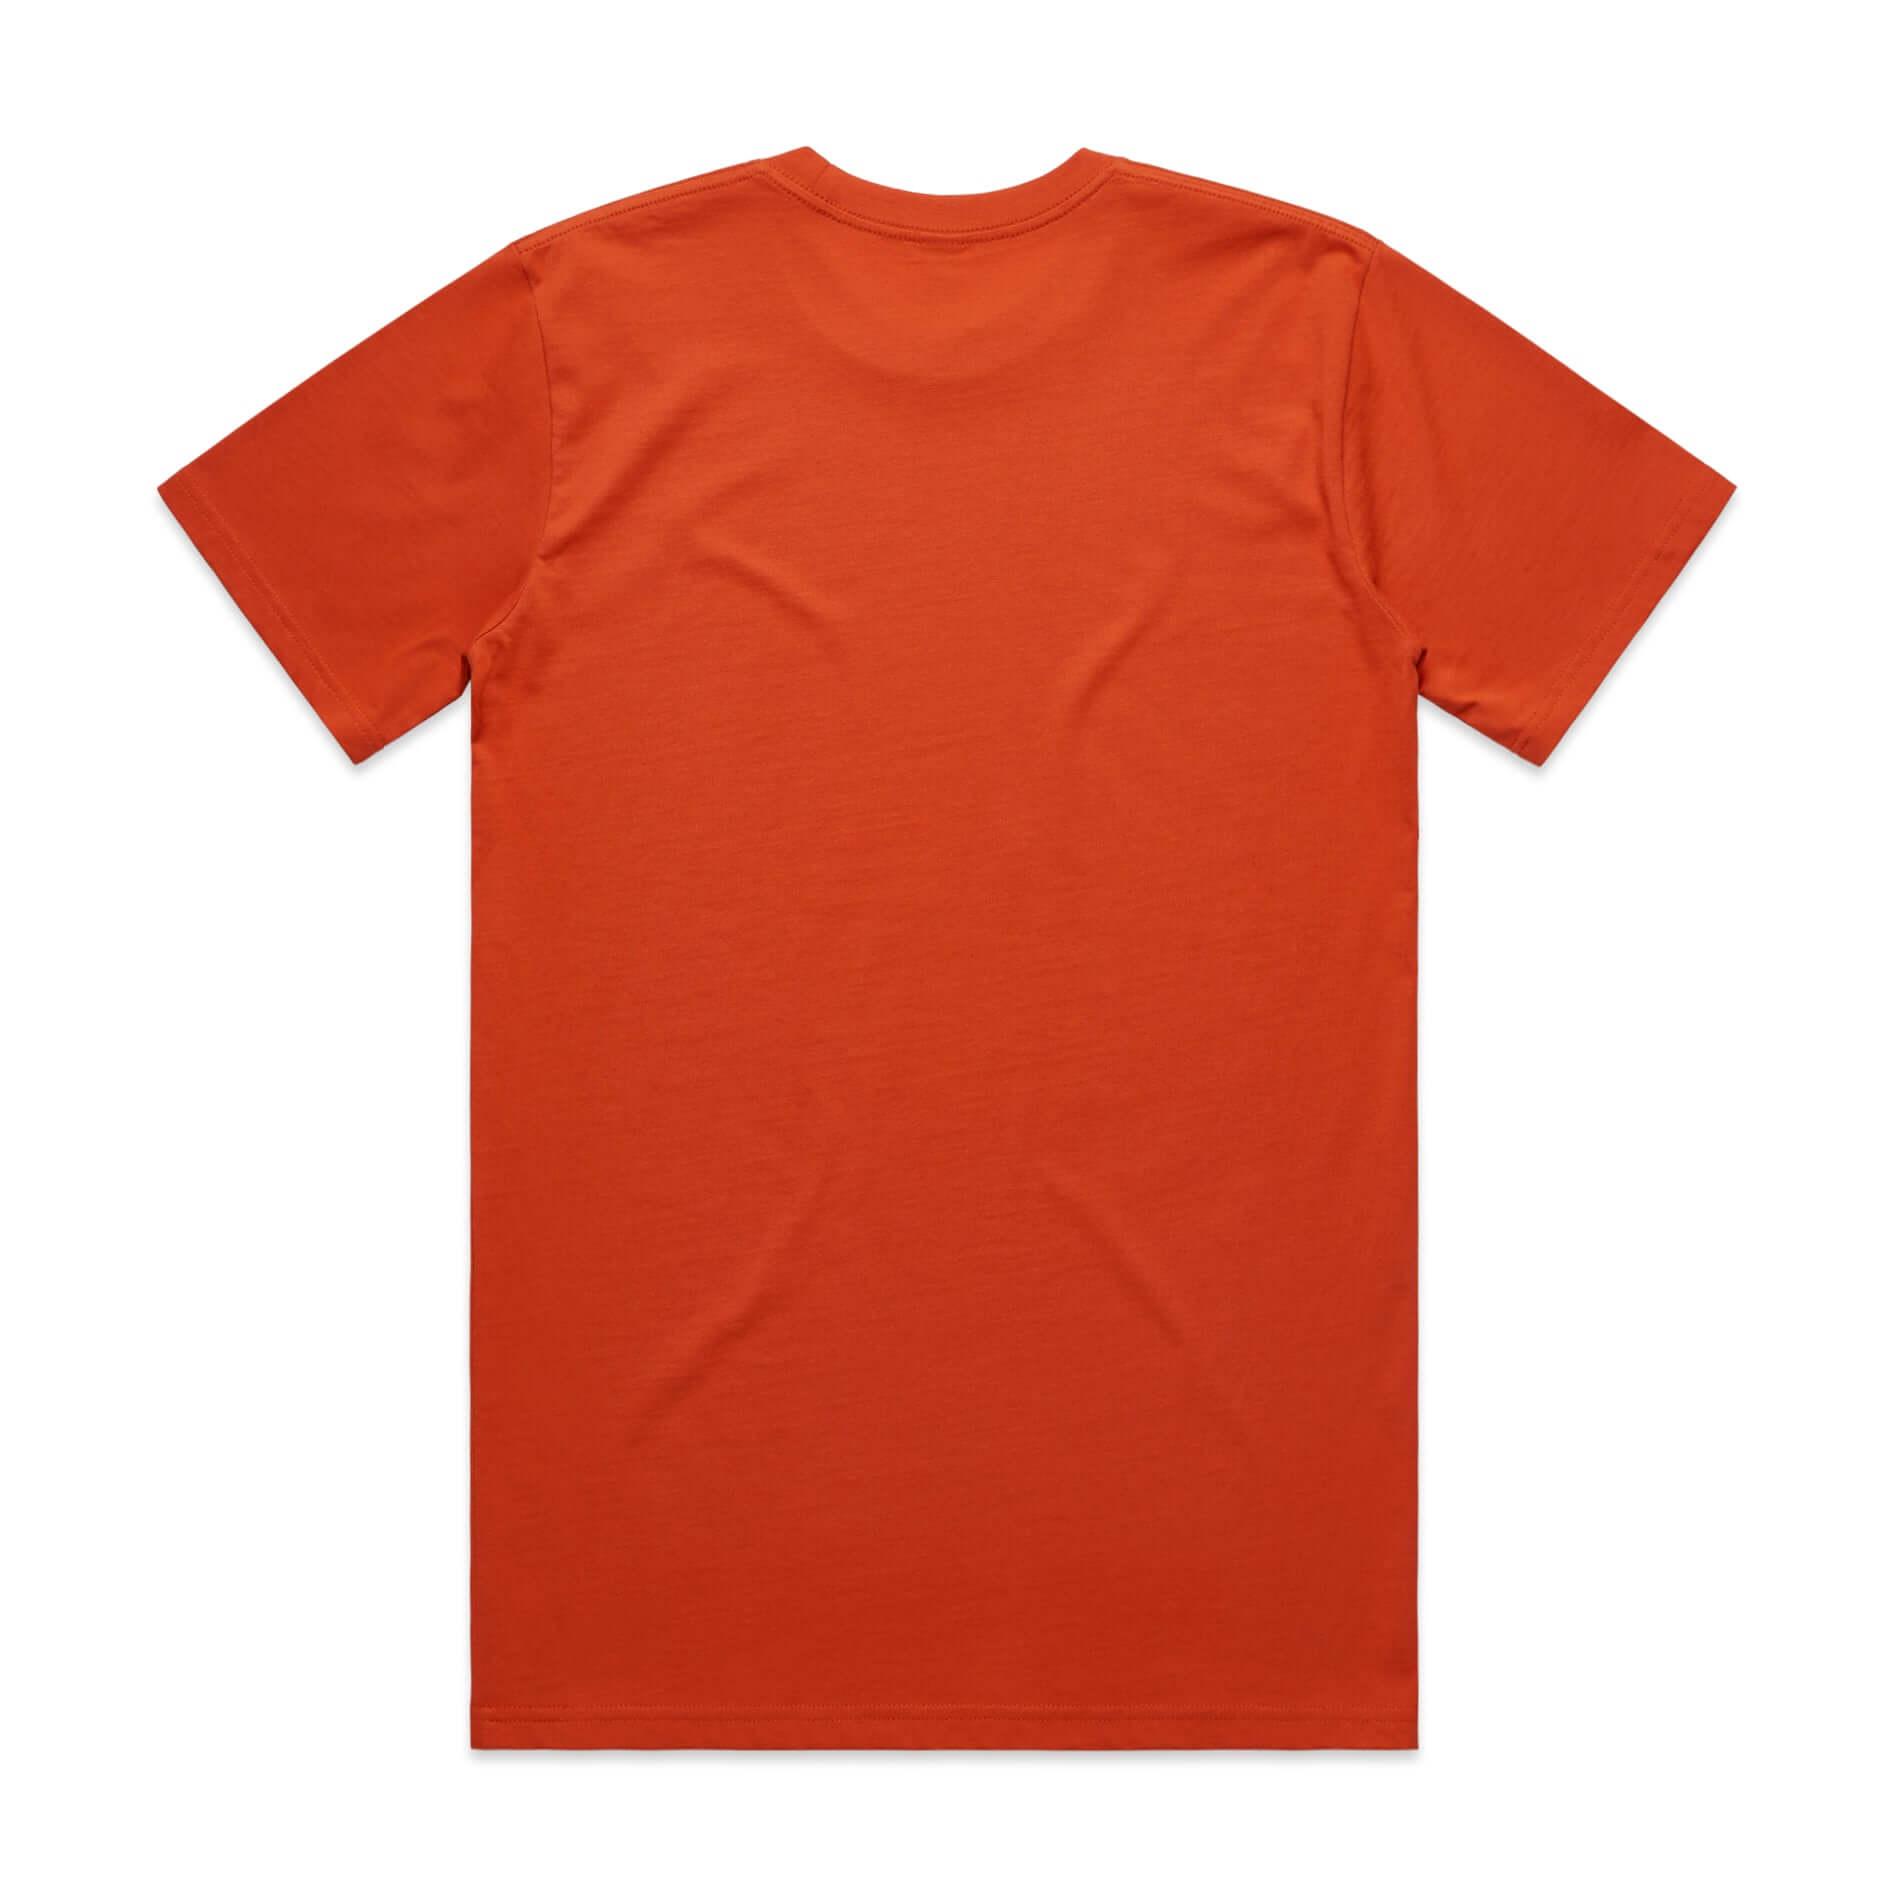 AS Colour CLASSIC TEE - Autumn